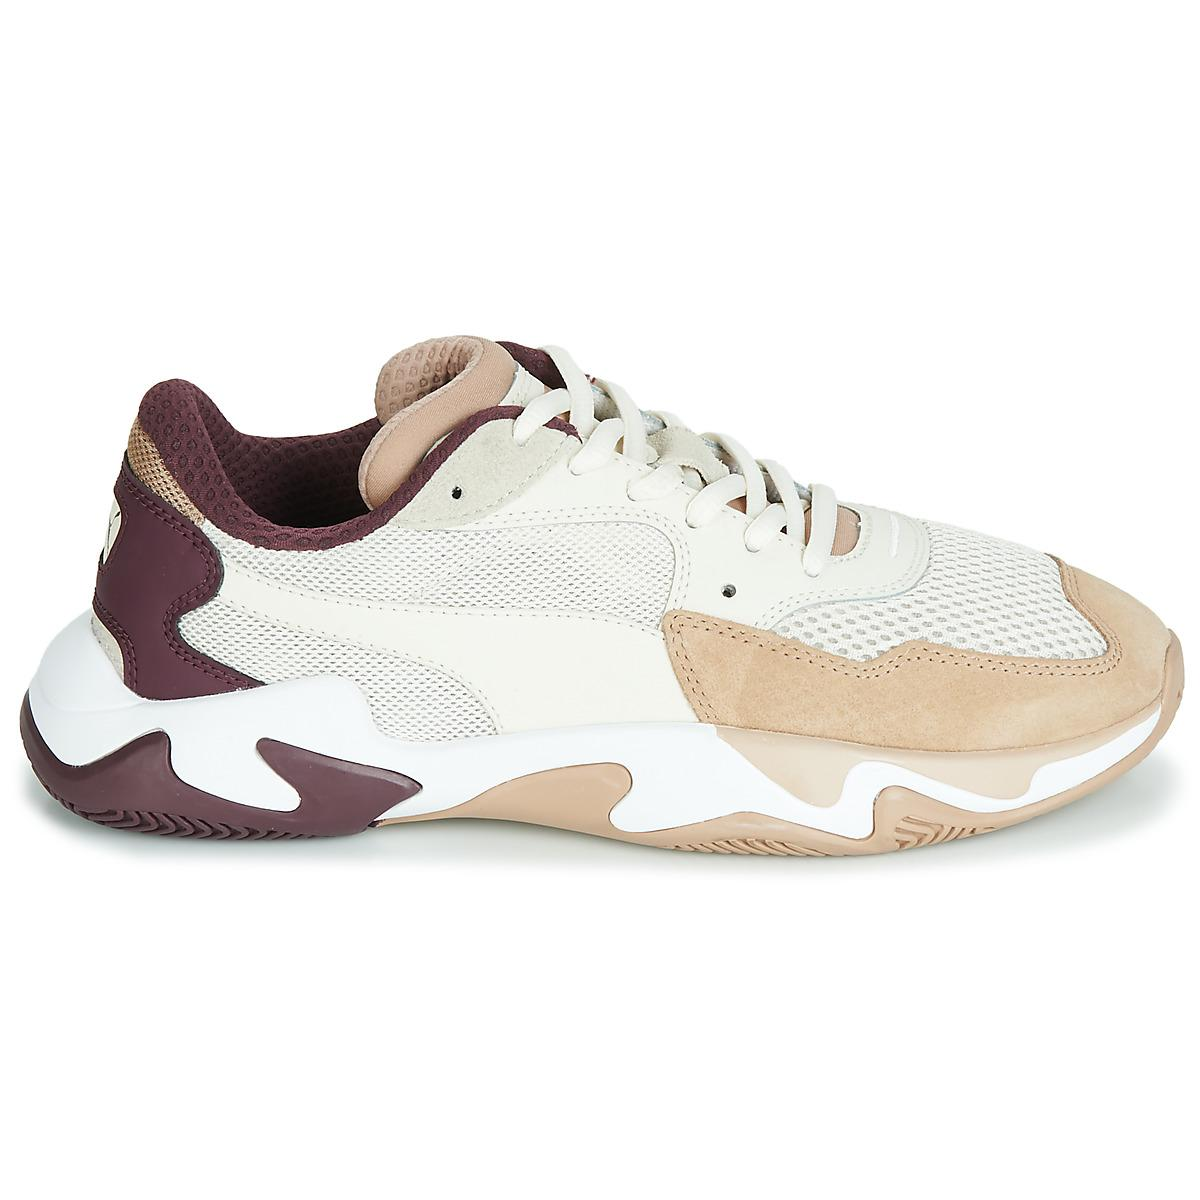 Storm Origin Nougat Women's Shoes (trainers) In Beige